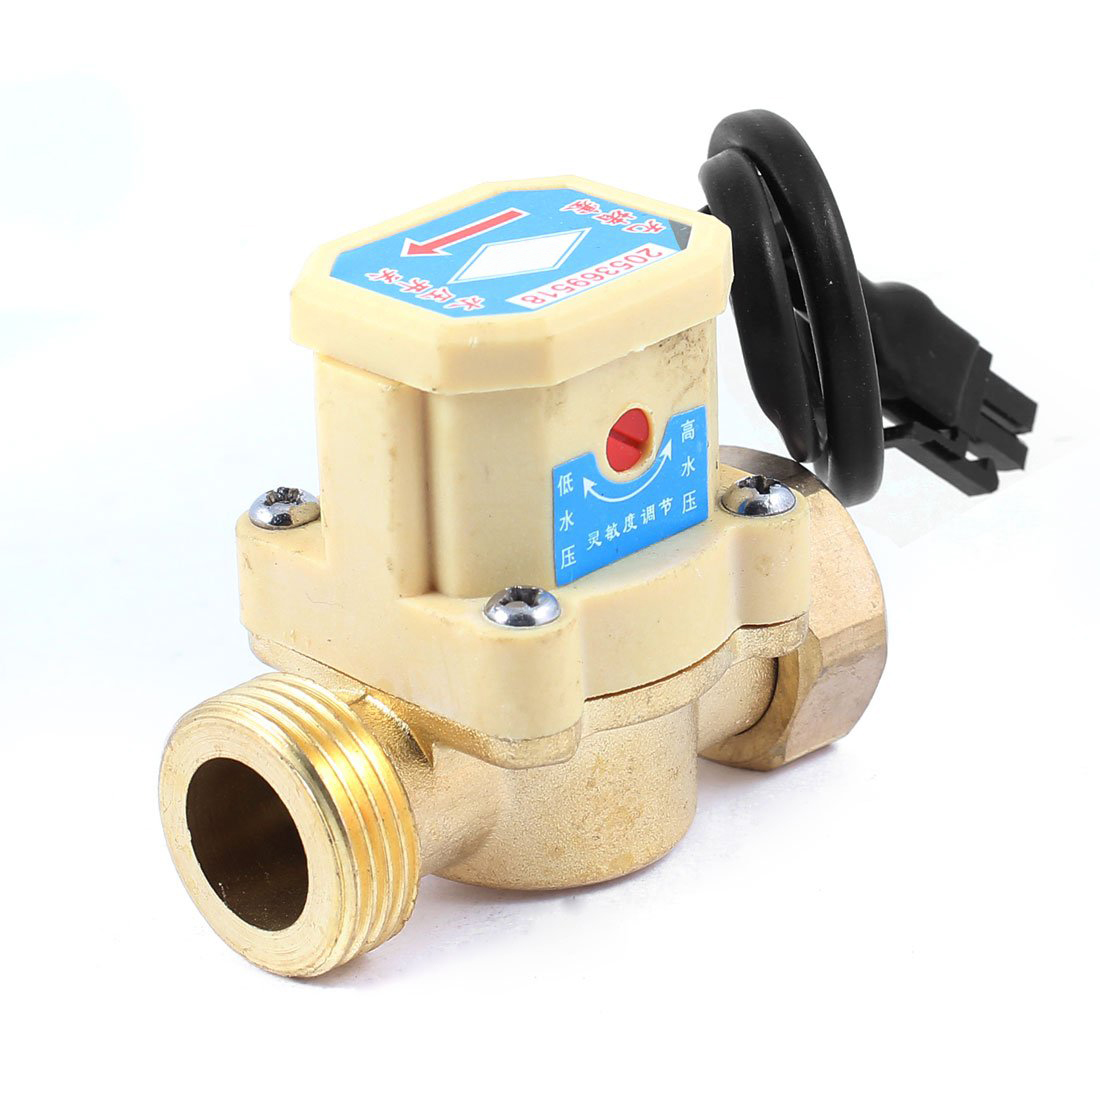 Promotion! 26mm 3/4 PT Thread Connector 120W Pump Water Flow Sensor Switch ksol new style 26mm 3 4 pt thread connector 120w pump water flow sensor switch